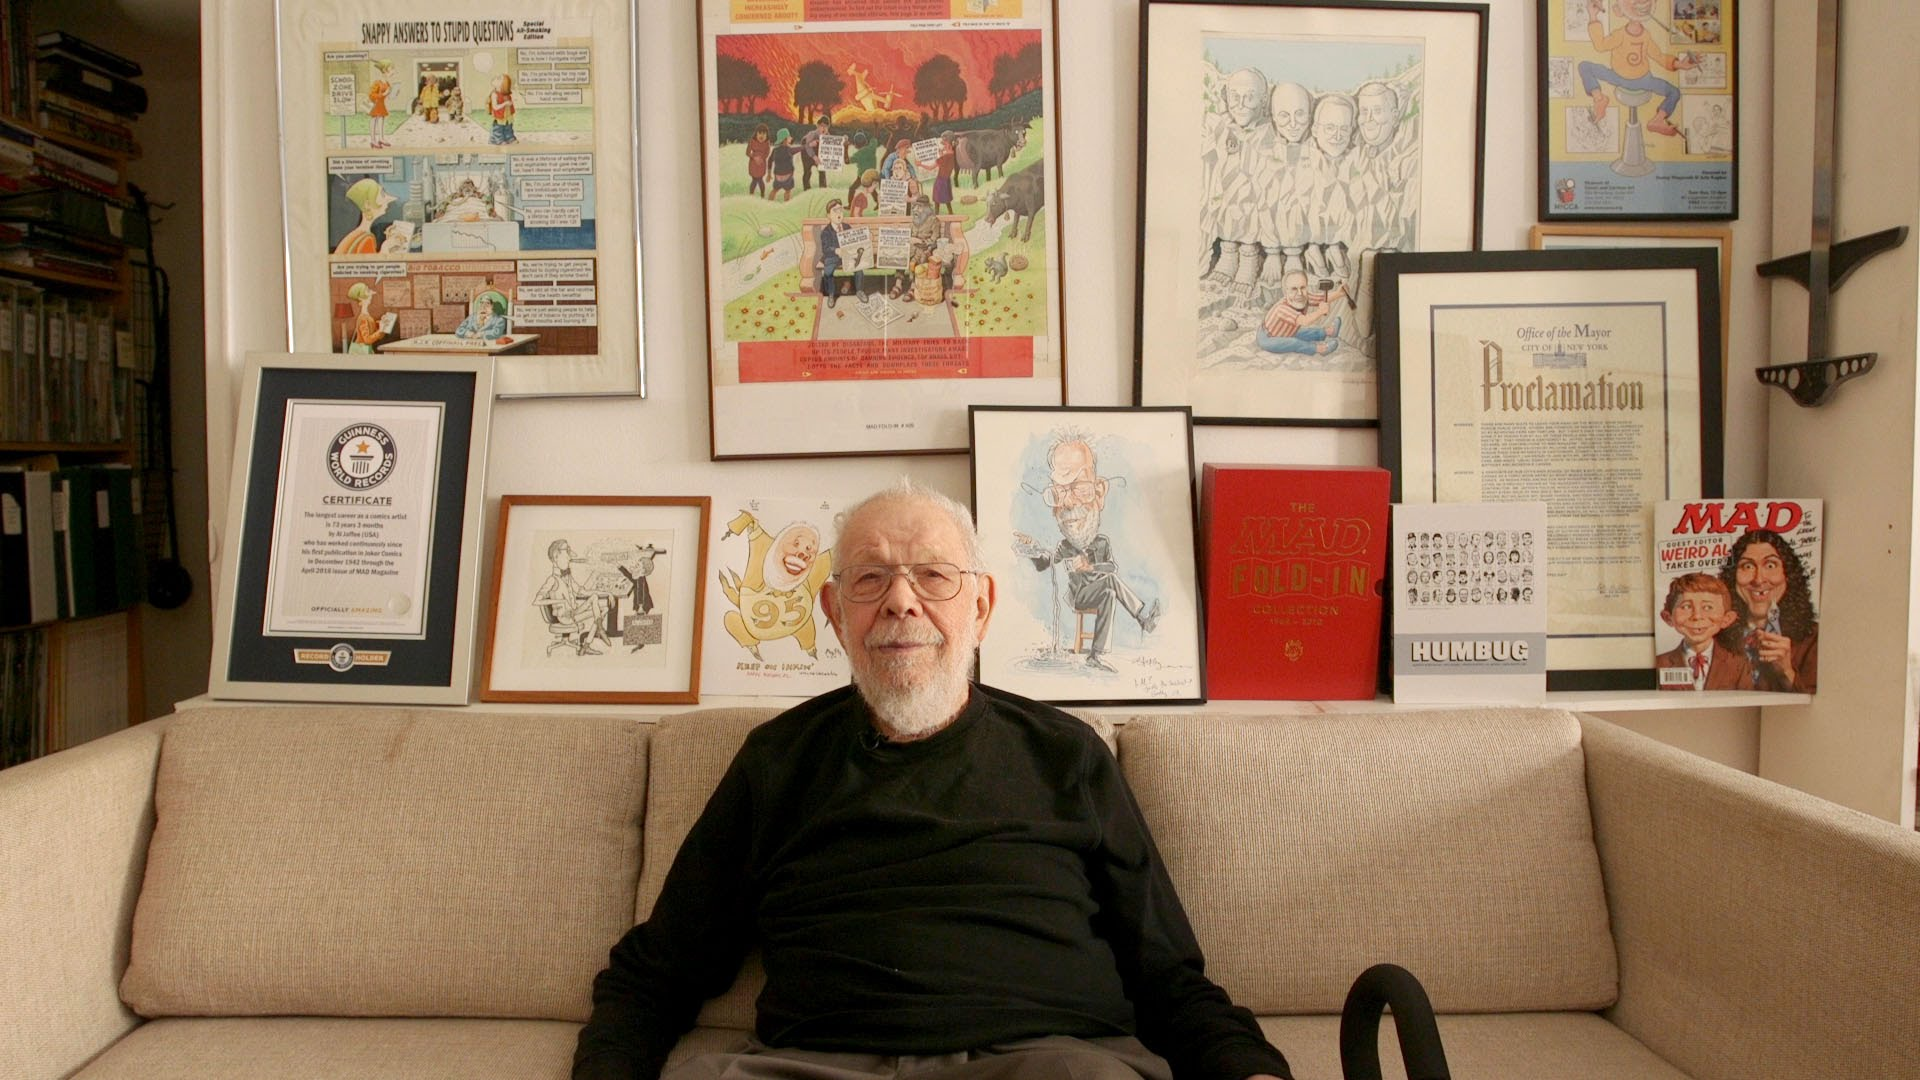 Al Jaffee, MAD Magazine's 95-Year-Old Journeyman Cartoonist